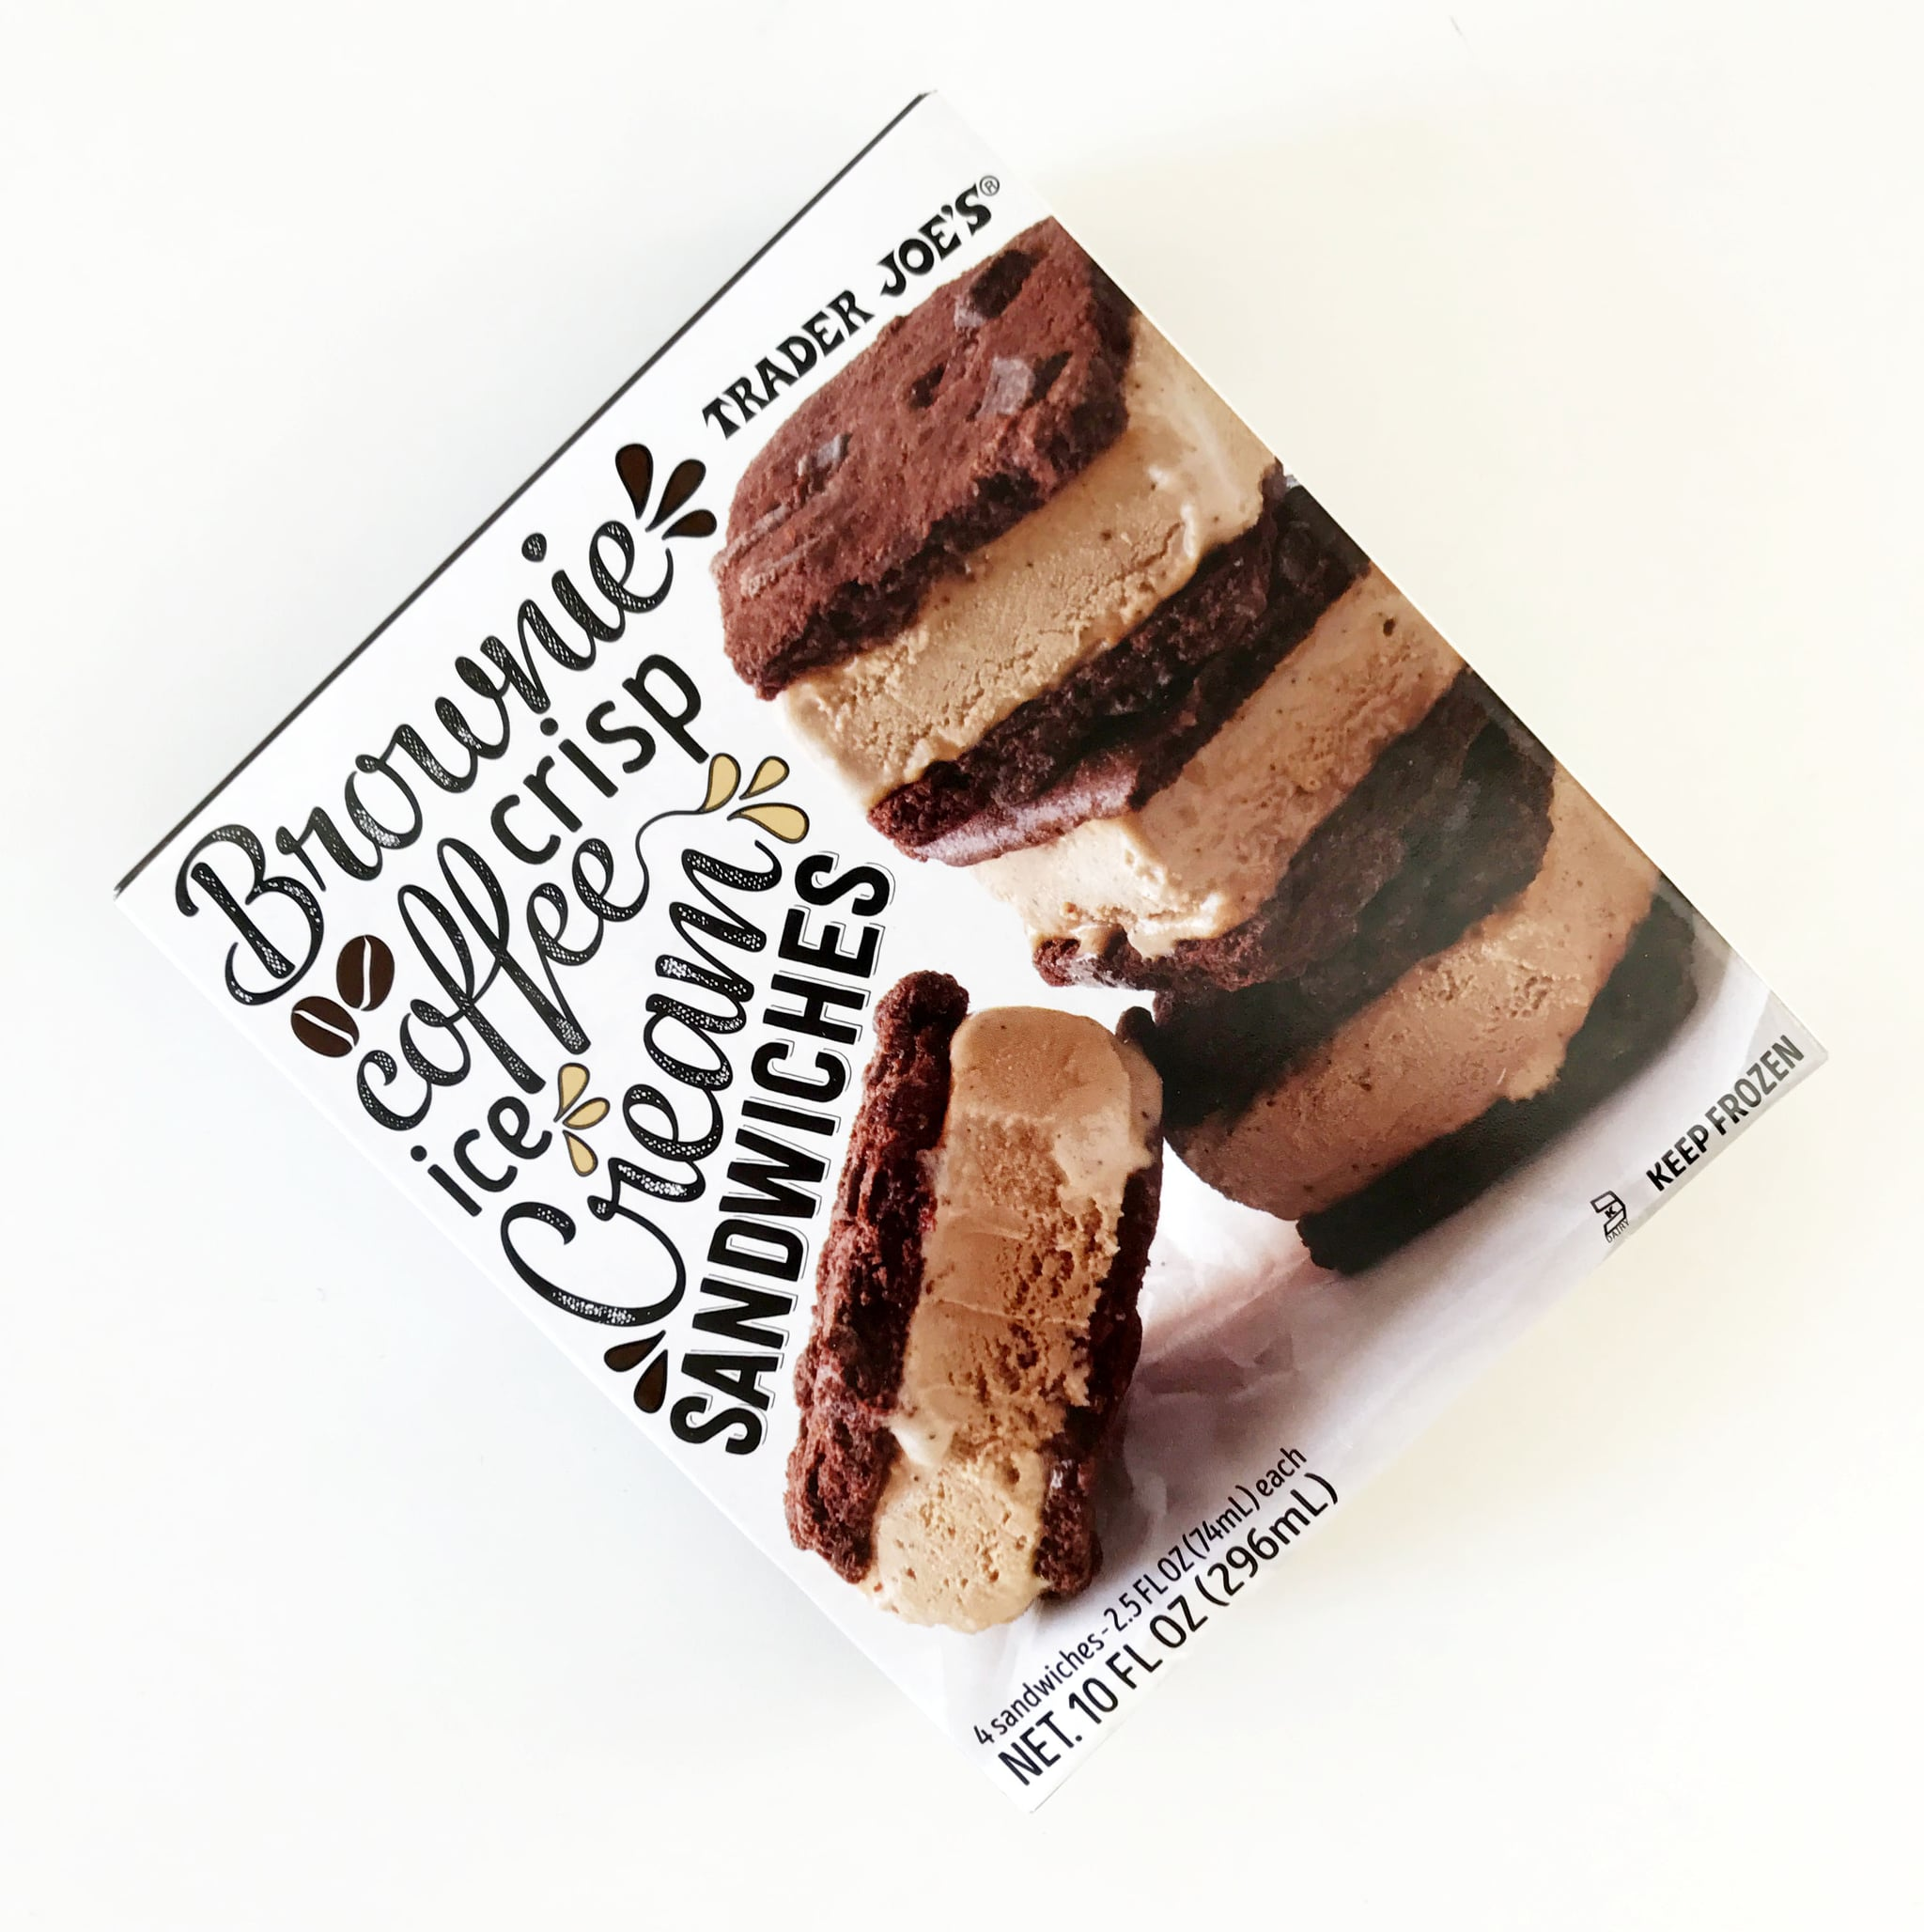 New Ice Is By Far Best >> Trader Joe S Brownie Crisp Coffee Ice Cream Sandwiches Popsugar Food